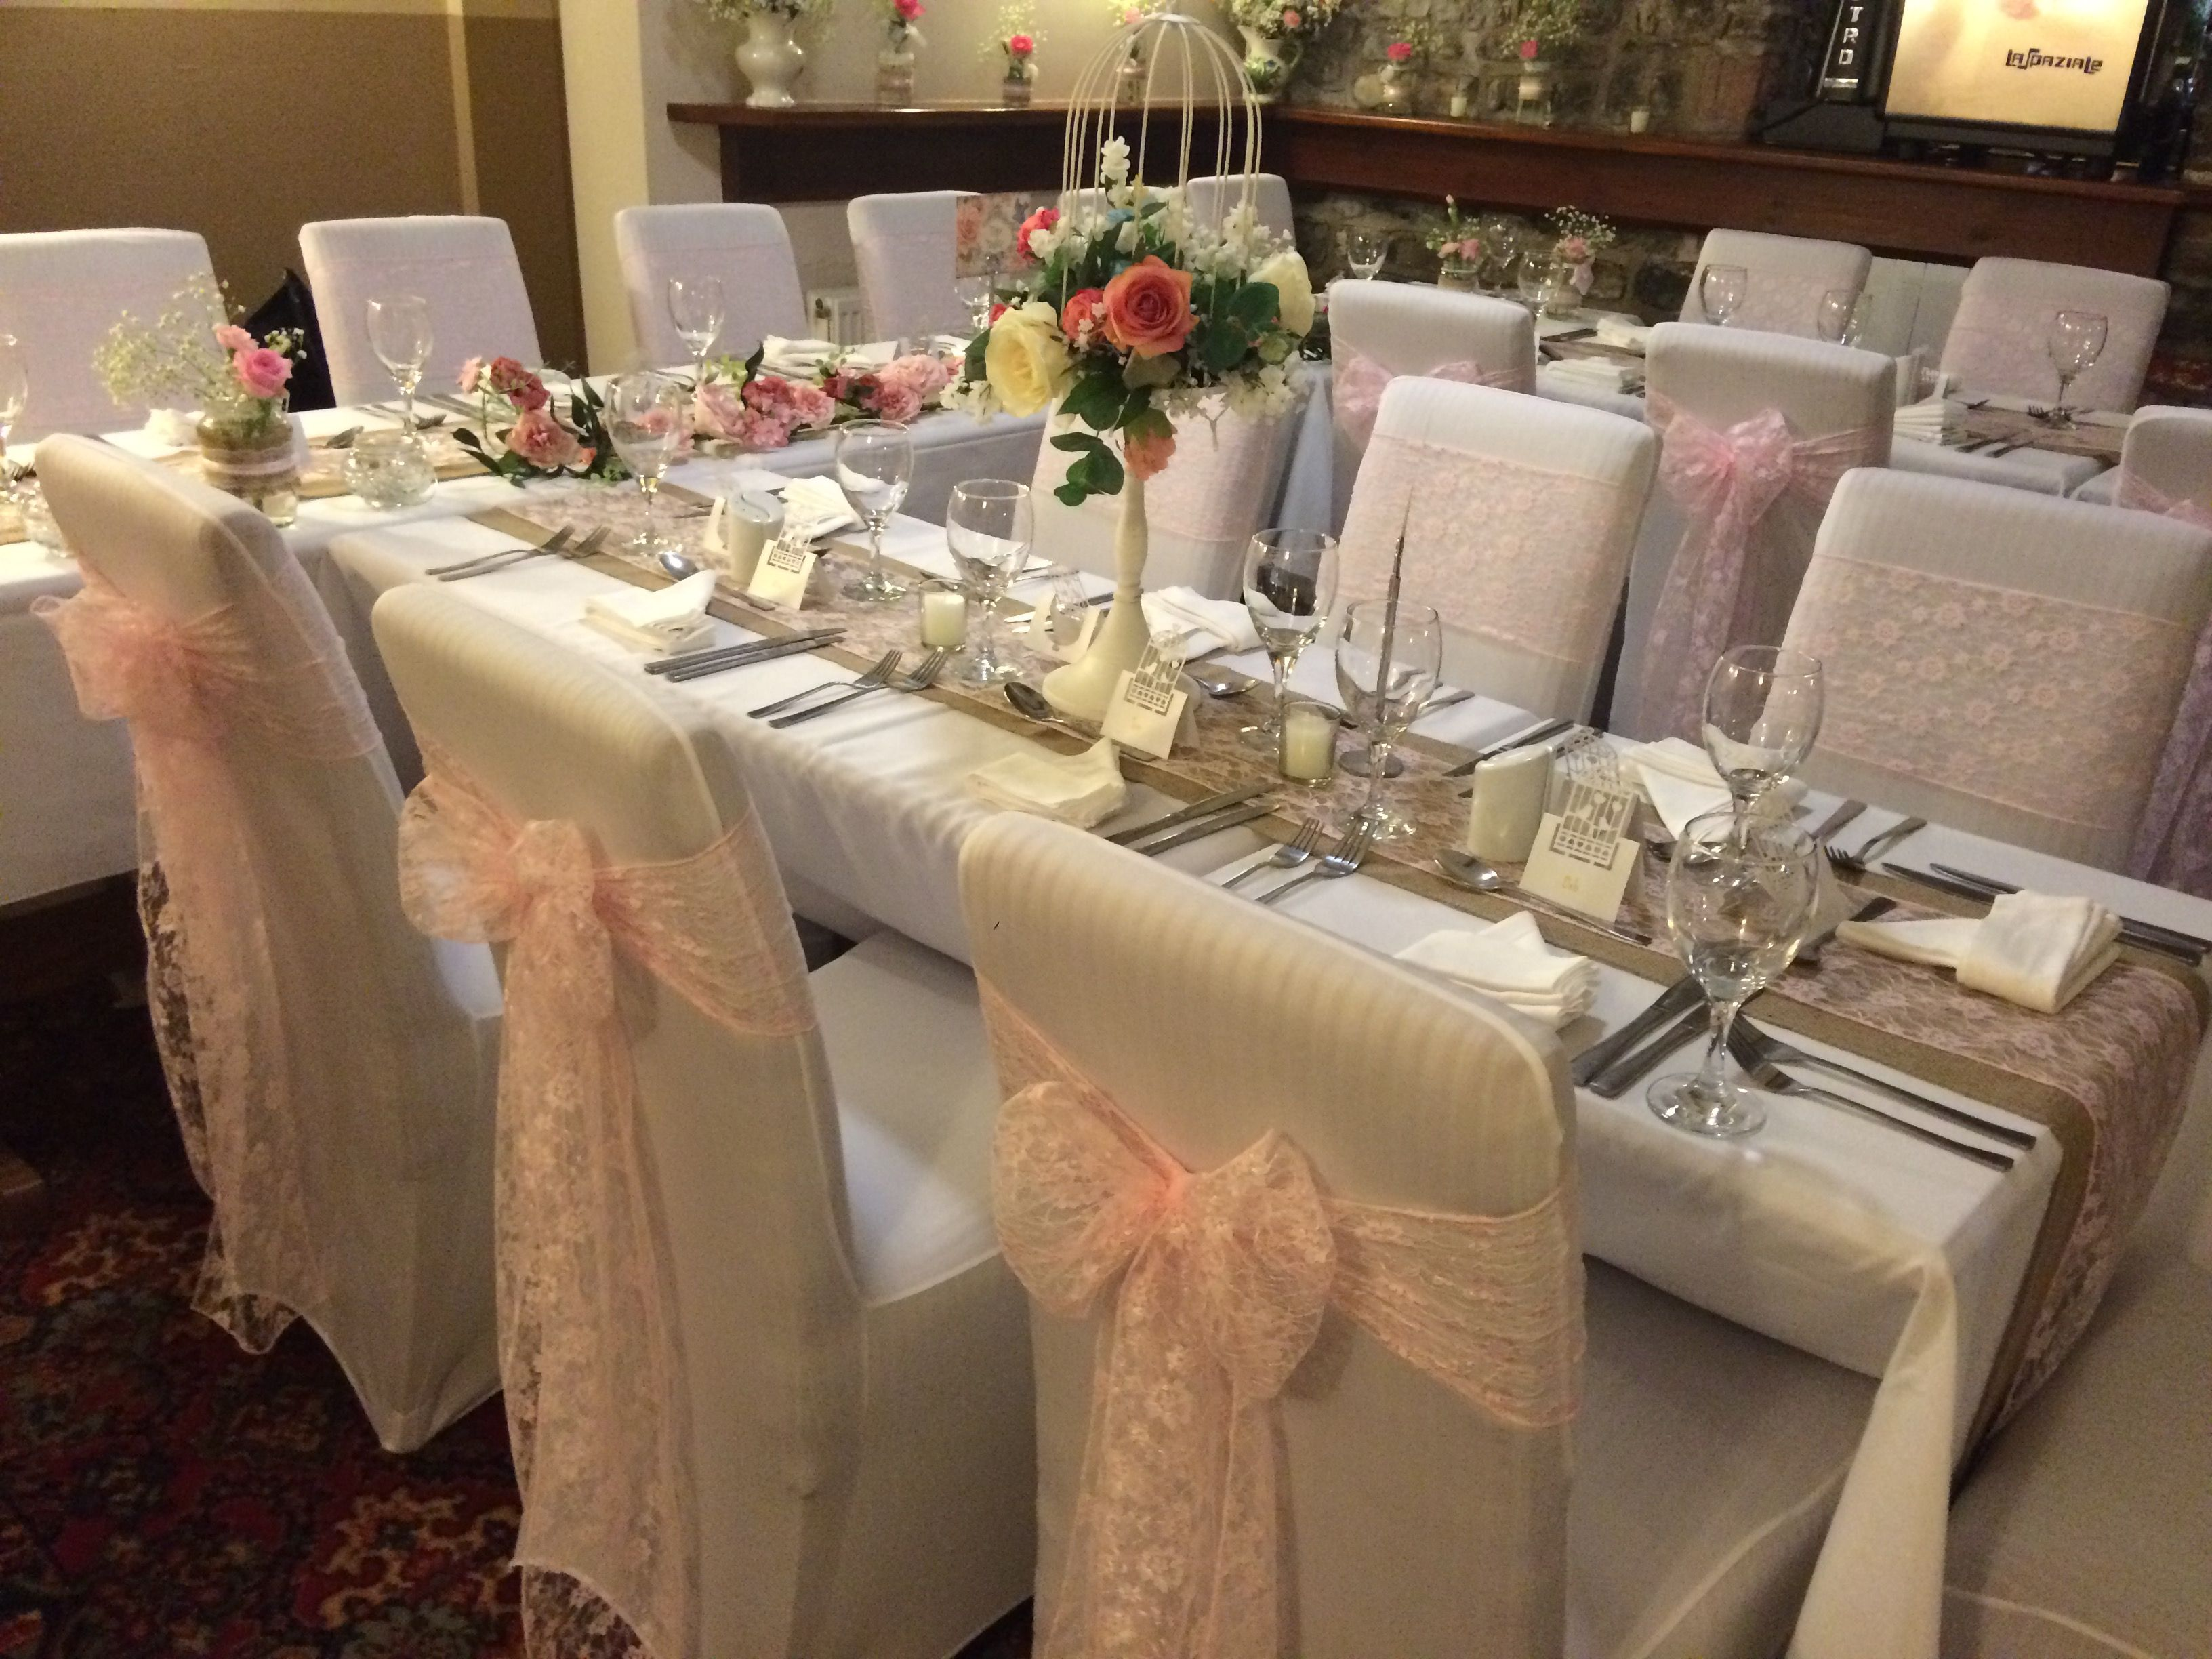 White Chair Covers And Pink Lace Sashes And Hessian Table Runners At A South Wales Wedding Dressed By Www Affinityevent Wedding Wedding Hire White Chair Covers